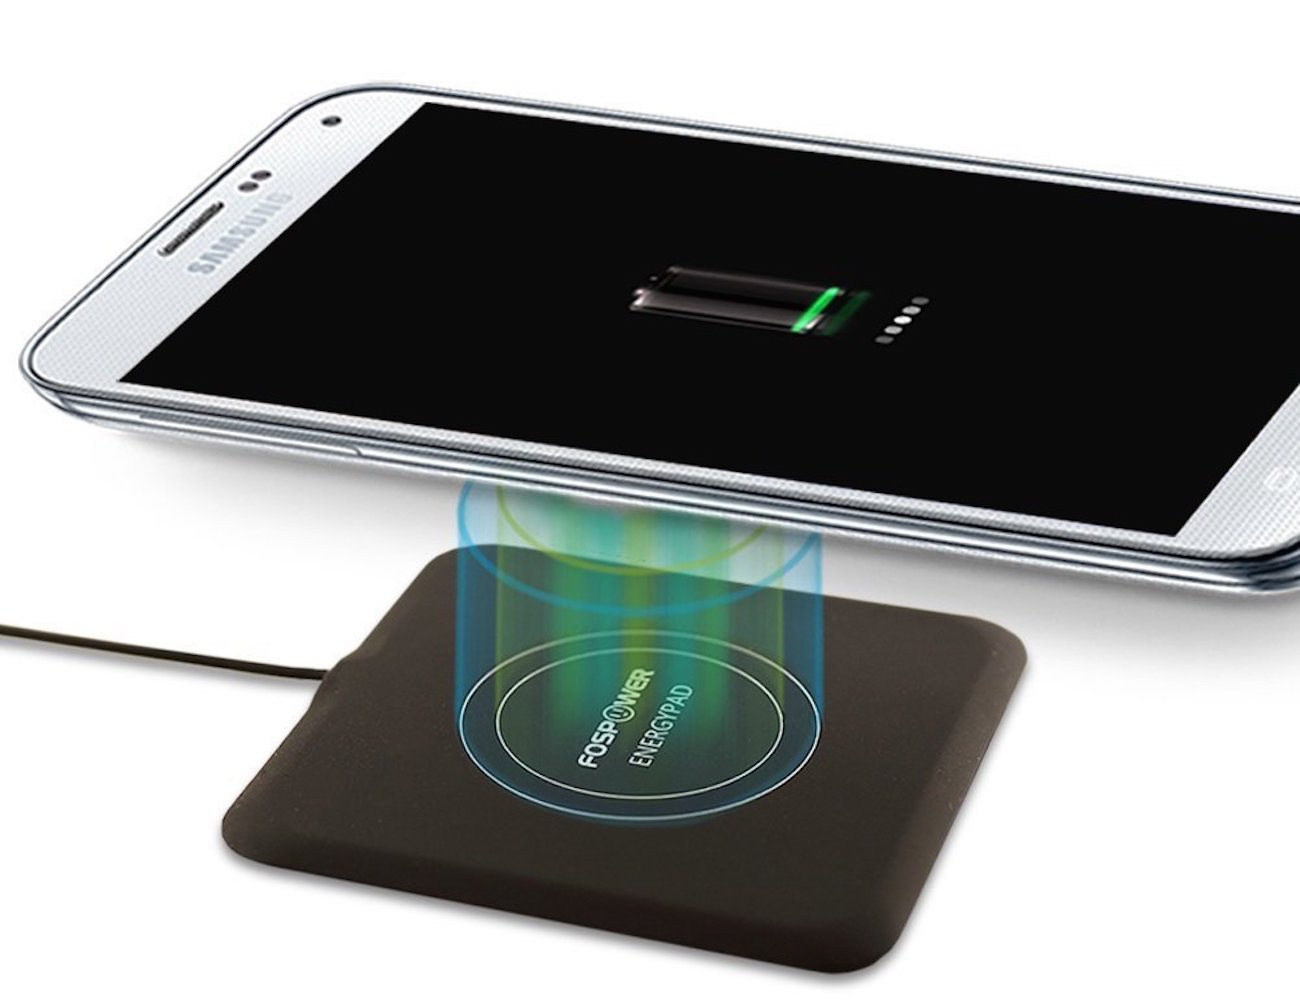 energypad 1 5a output qi enabled wireless charger by fospower gadget flow. Black Bedroom Furniture Sets. Home Design Ideas